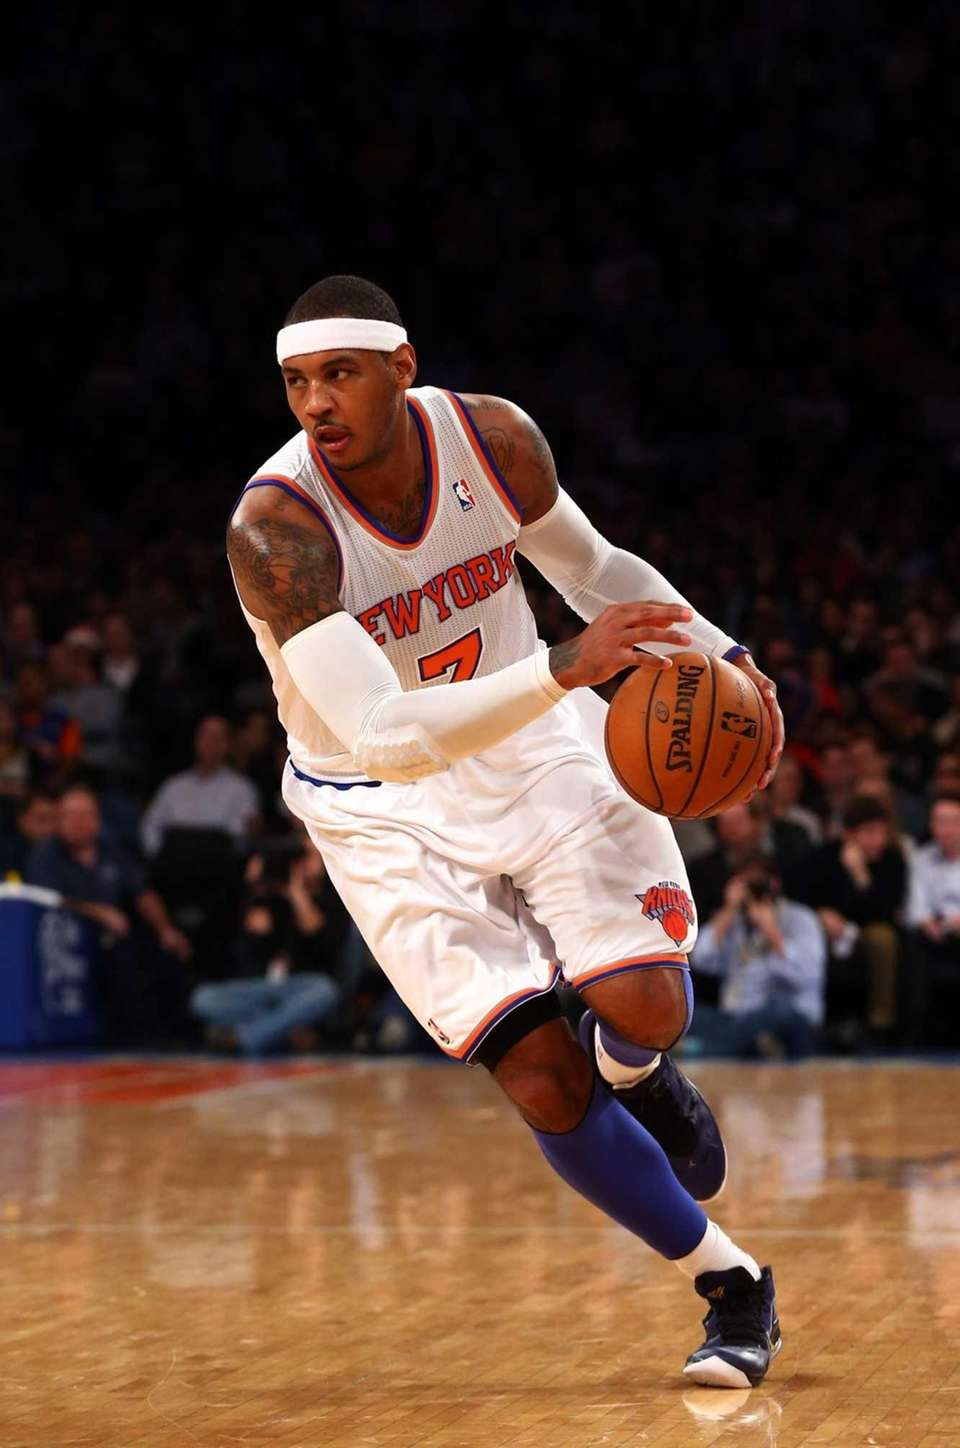 Carmelo Anthony controls the ball during a game